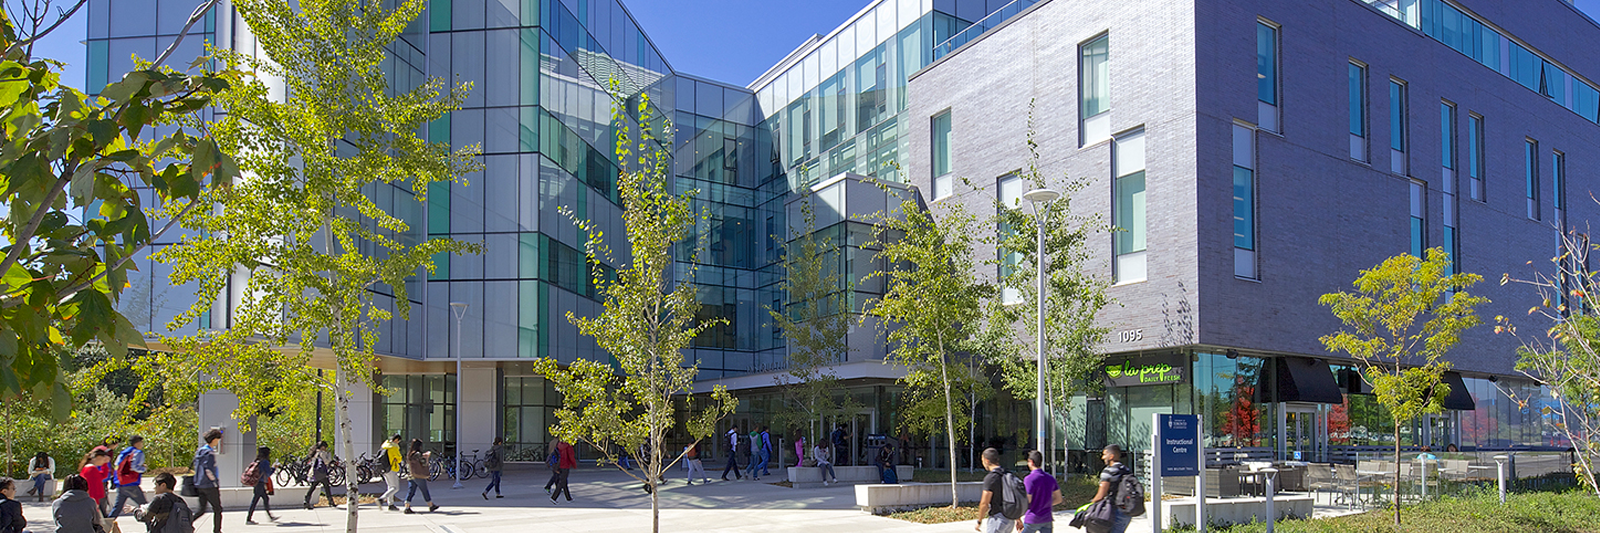 Instructional Centre, Home of Management at U of T Scarborough